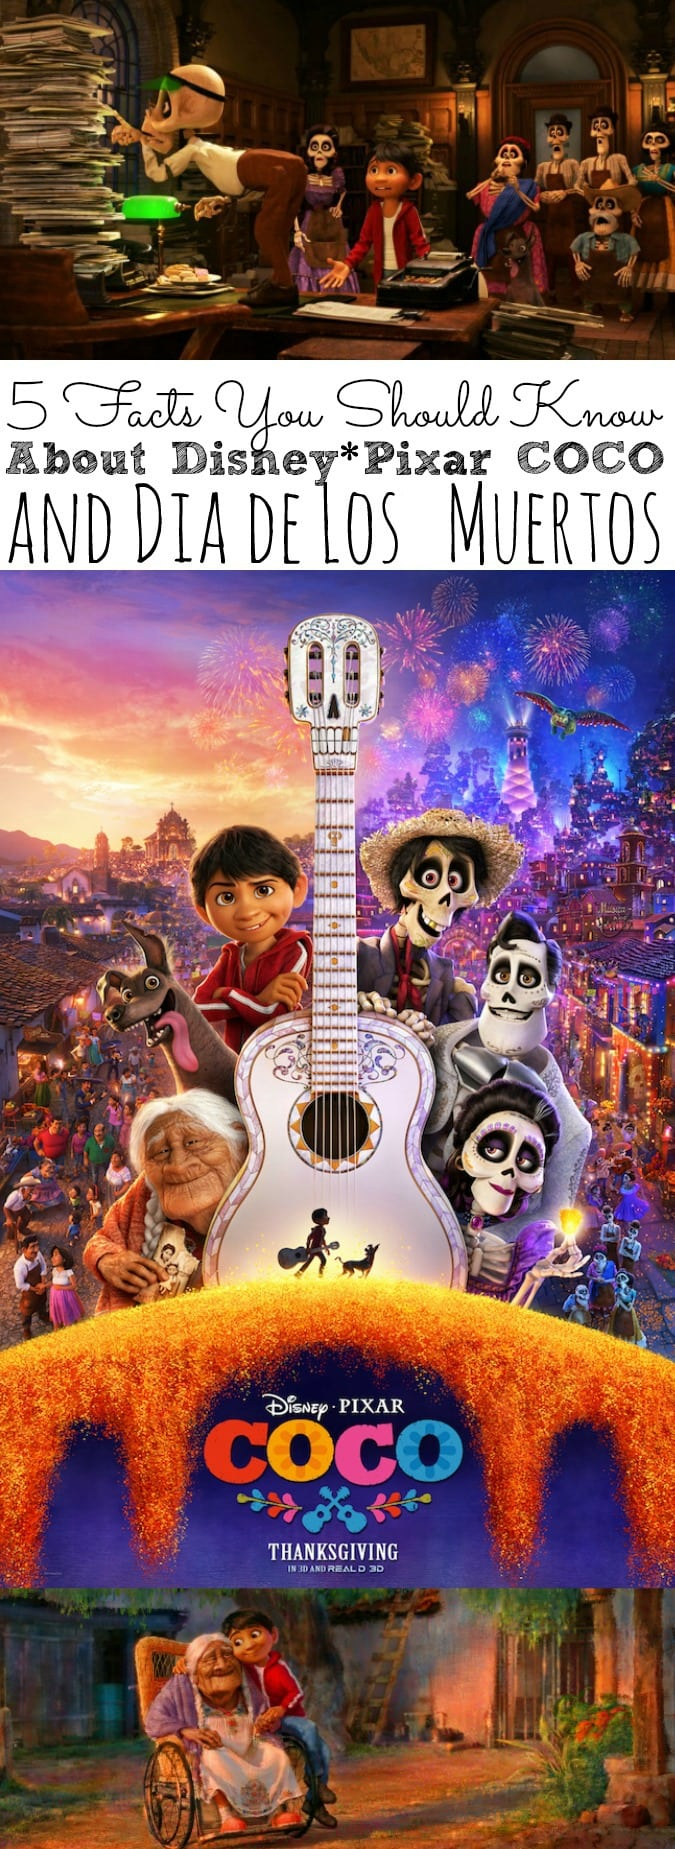 5 Facts You Should Know About Coco and Dia de Los Muertos